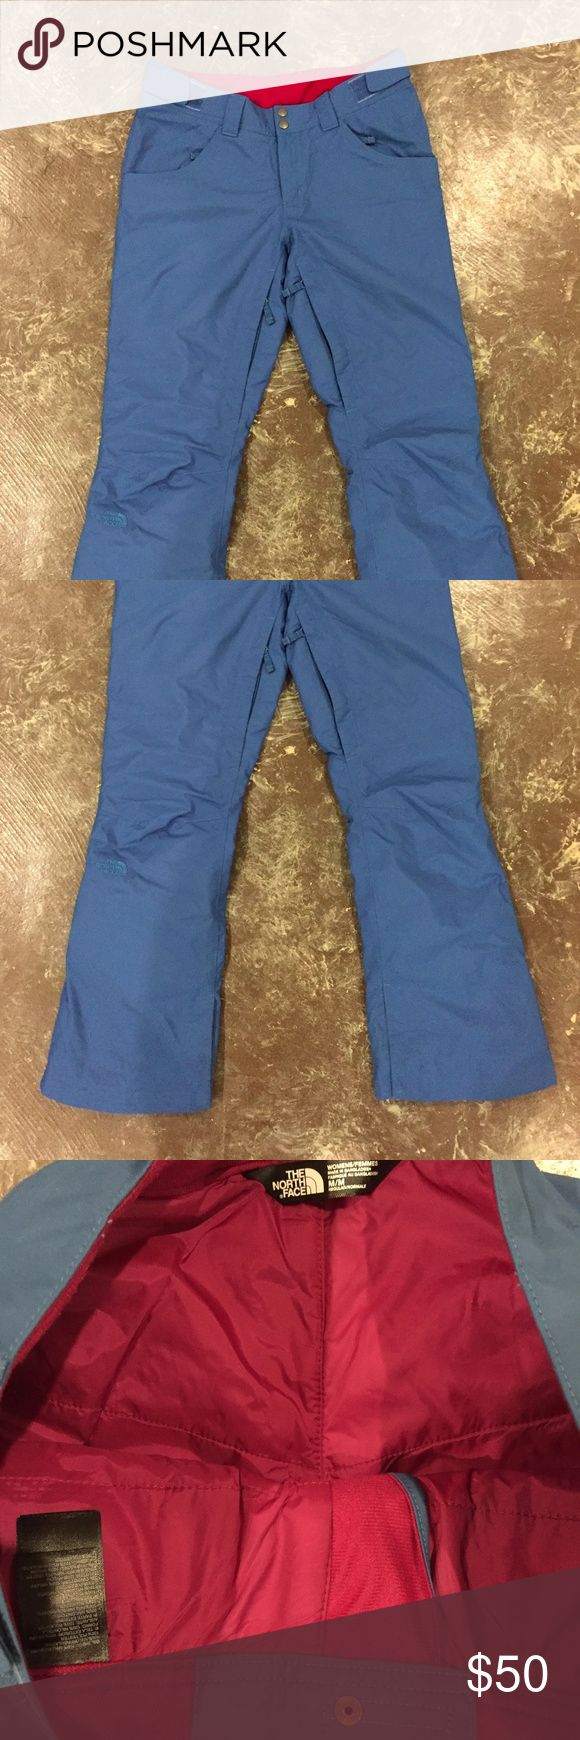 """The North Face Farrows Pant Insulated Ski Pants Women's Farrow Ski / Snowboard Pant in """"Dish Blue"""" with magenta pink lining. Fully waterproof. Size Medium, regular length. Adjustable waist, zips at inner thighs, and gaiters. Front scoop pockets also zip, back patch pockets do not. Excellent condition with  a few minor scuffs at the bottom.  Expected wear and tear. Worn about 5 times. North Face runs a little small--these would be good for someone who wears a 6 or 8 in brands like Gap, J…"""